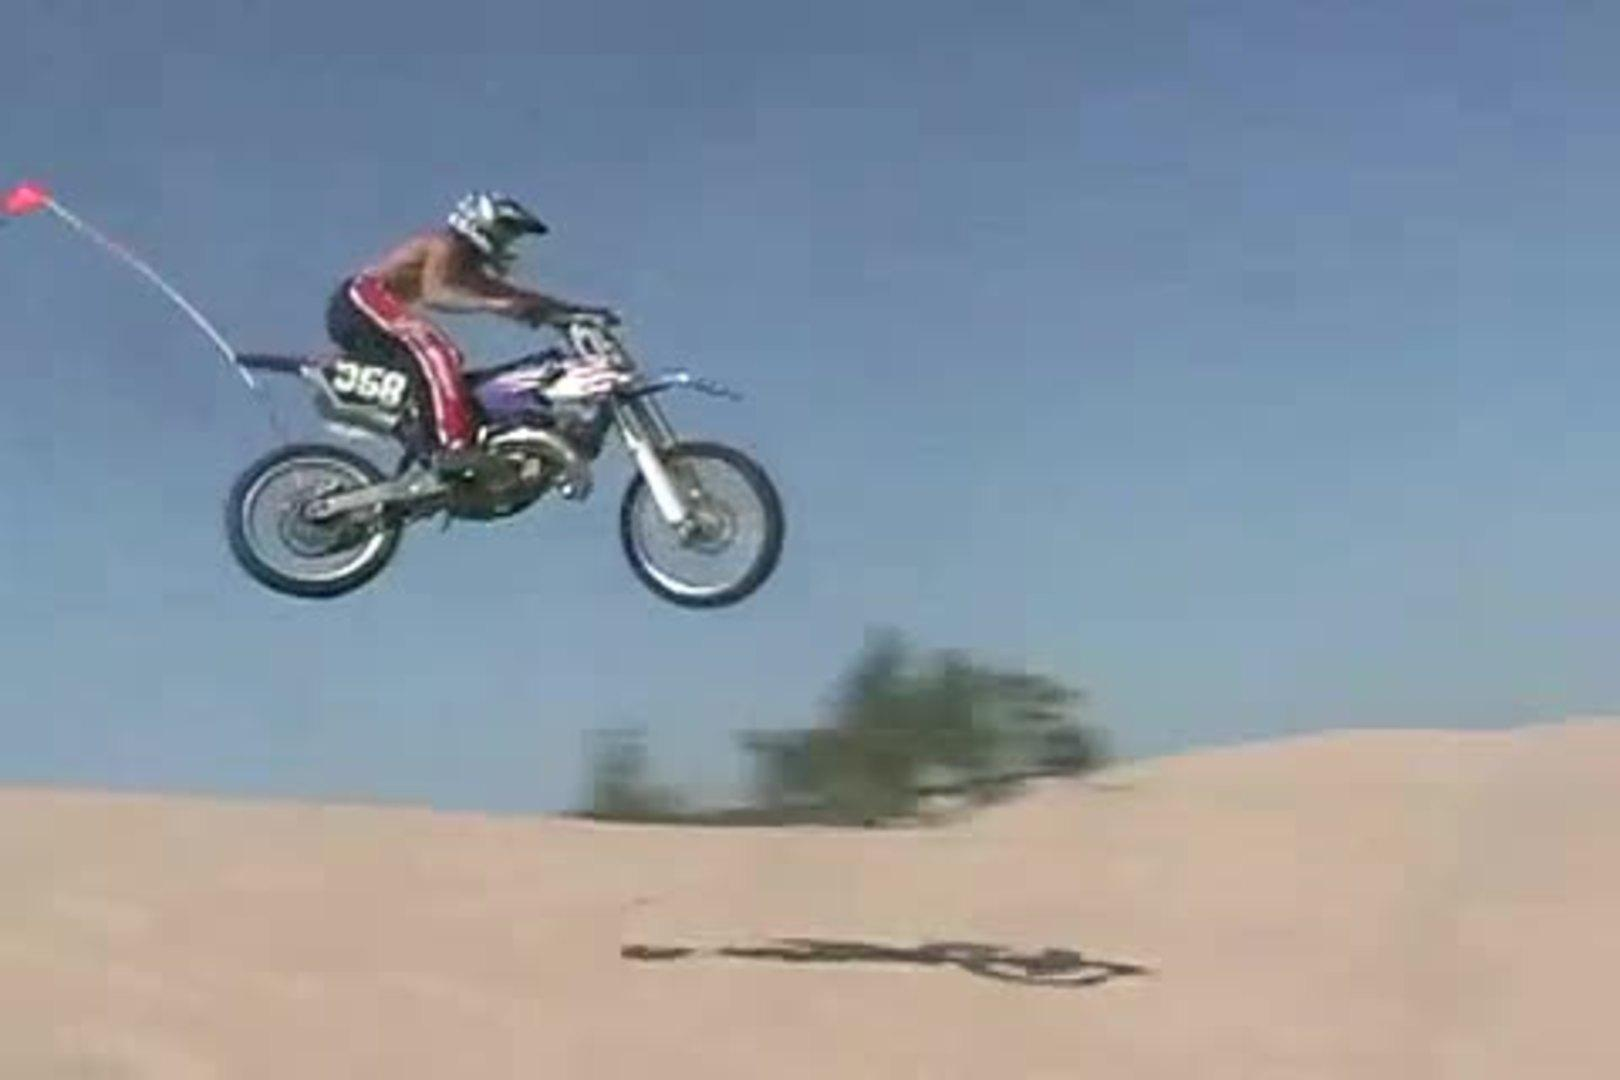 Rider Crashes While Coming Over Hill On Sand Dunes Jukin Media